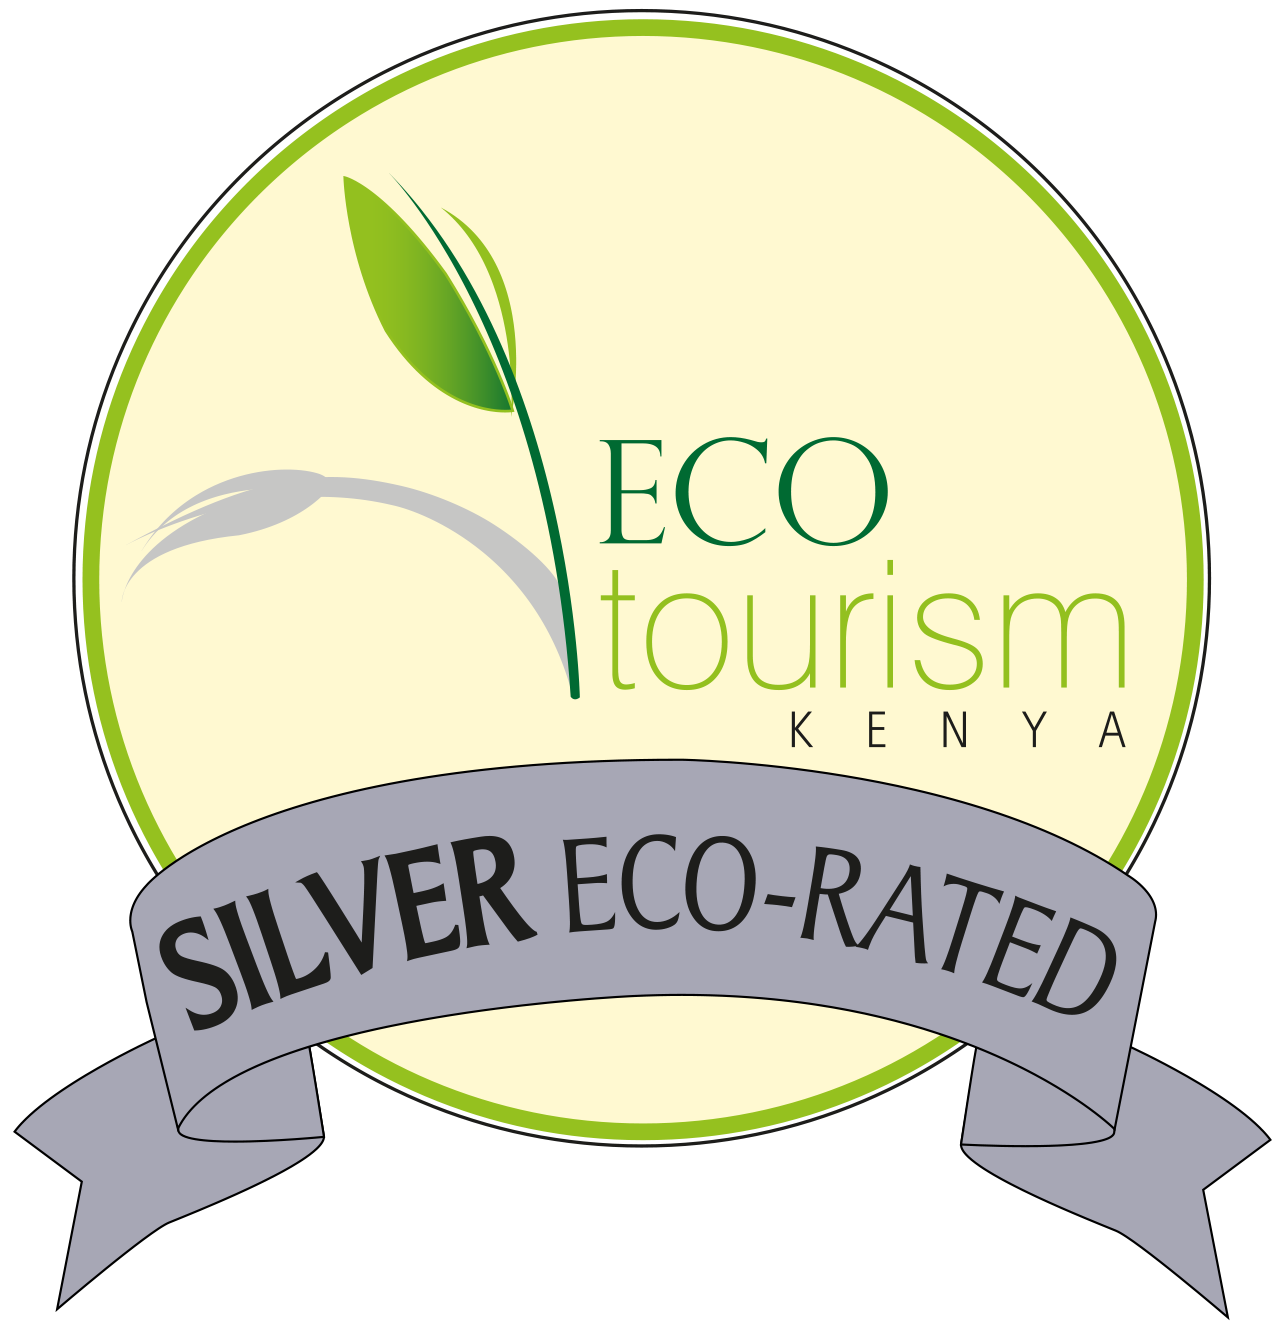 Silver Eco Rates